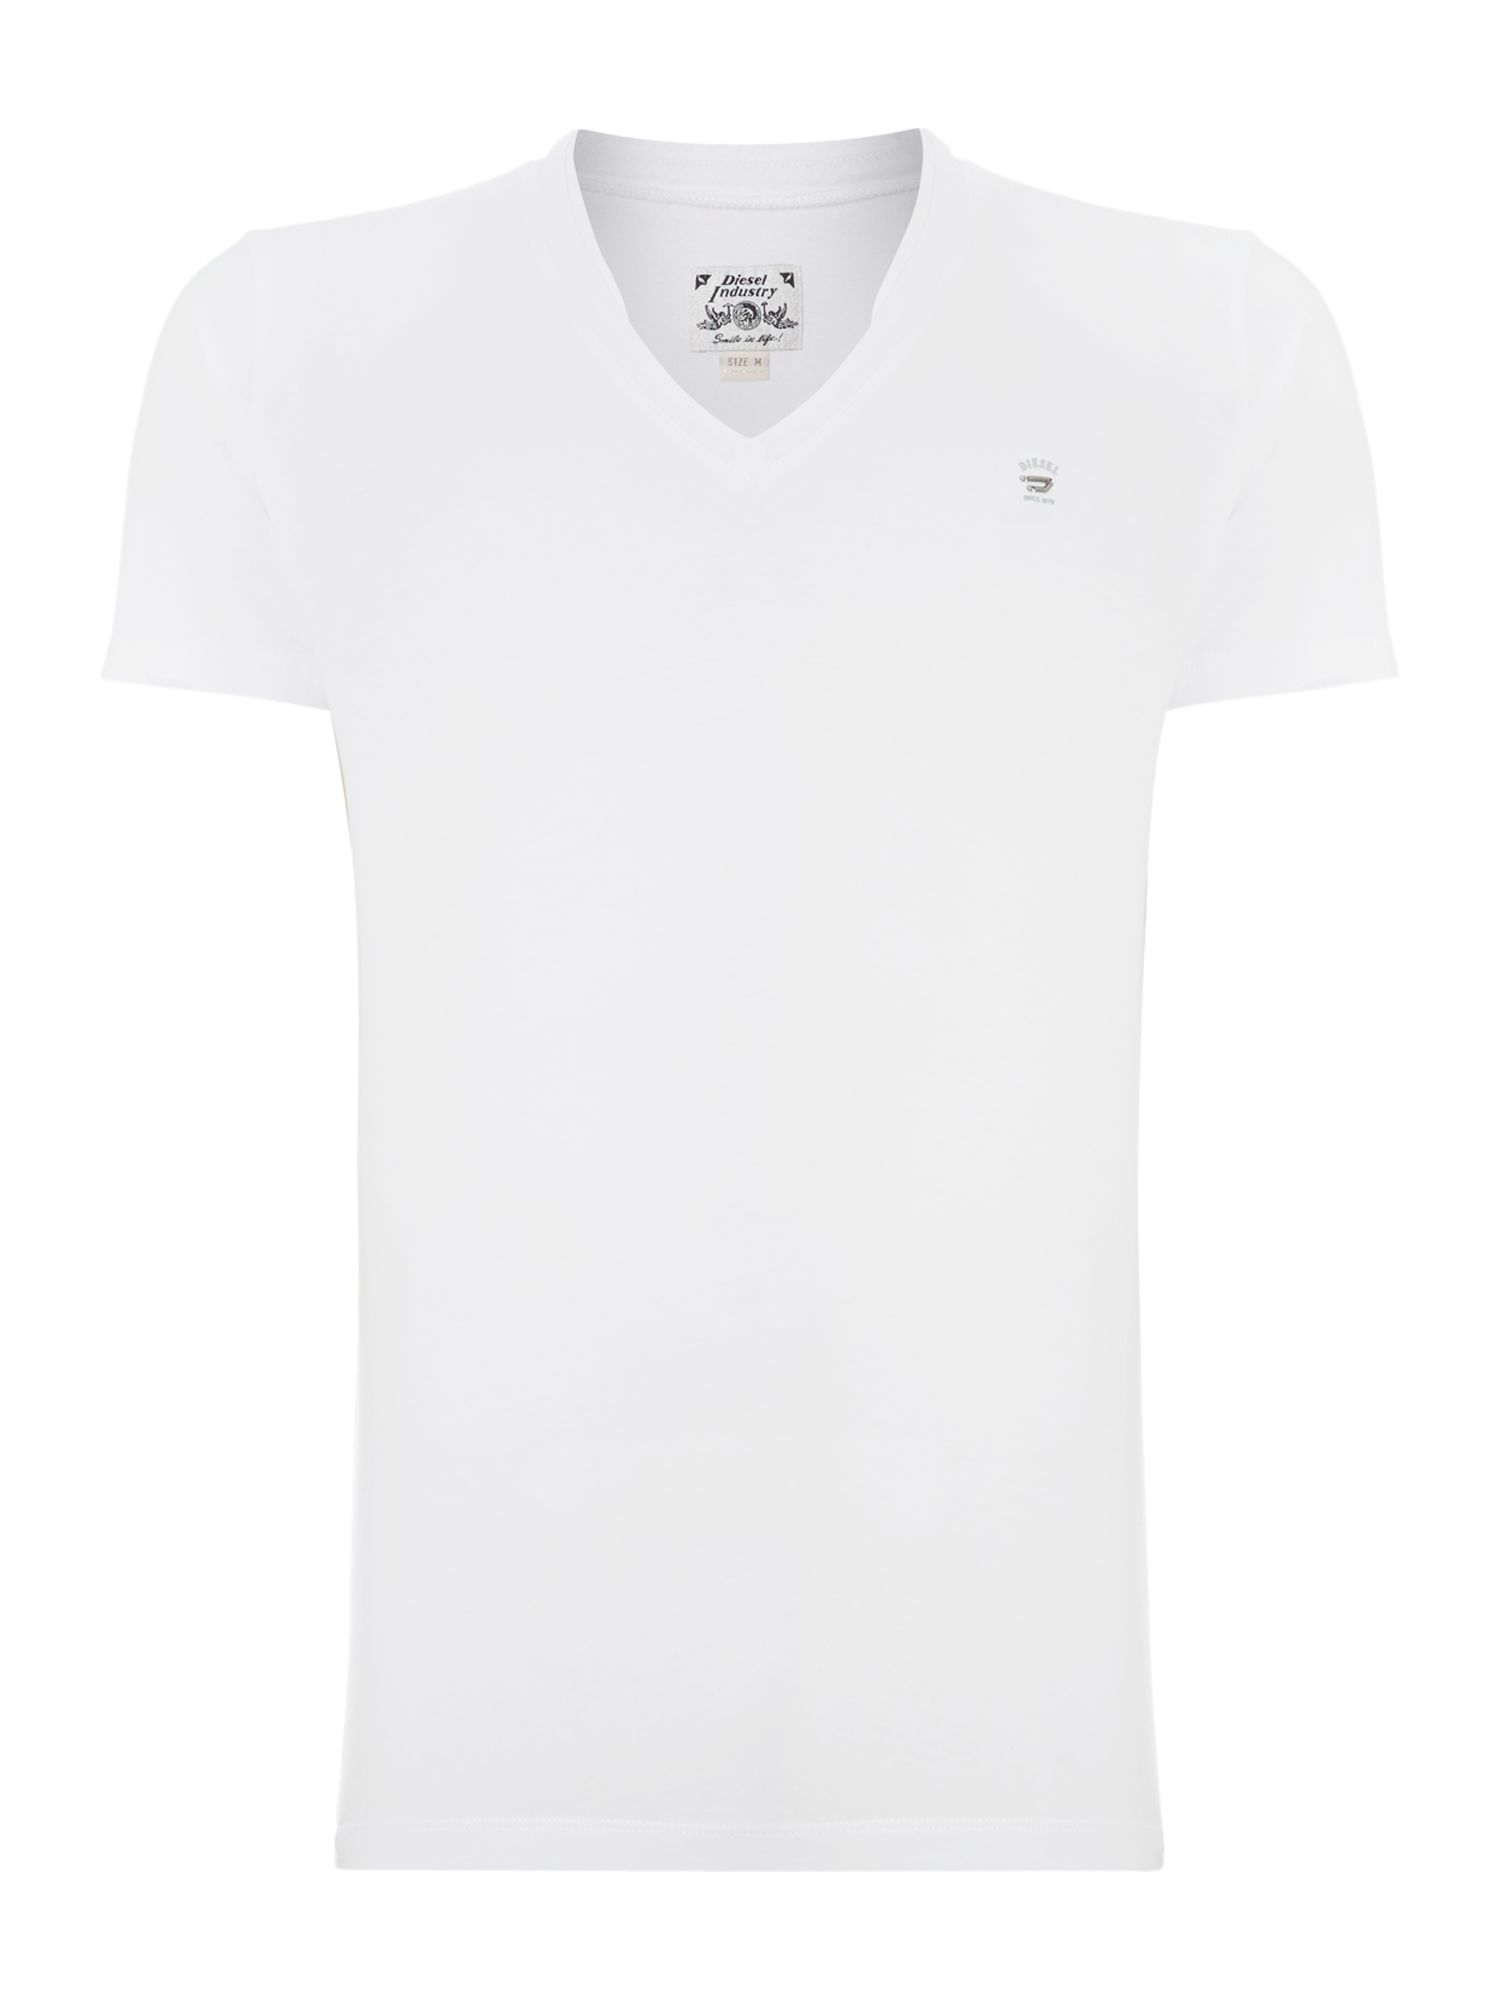 Vee neck logo t shirt